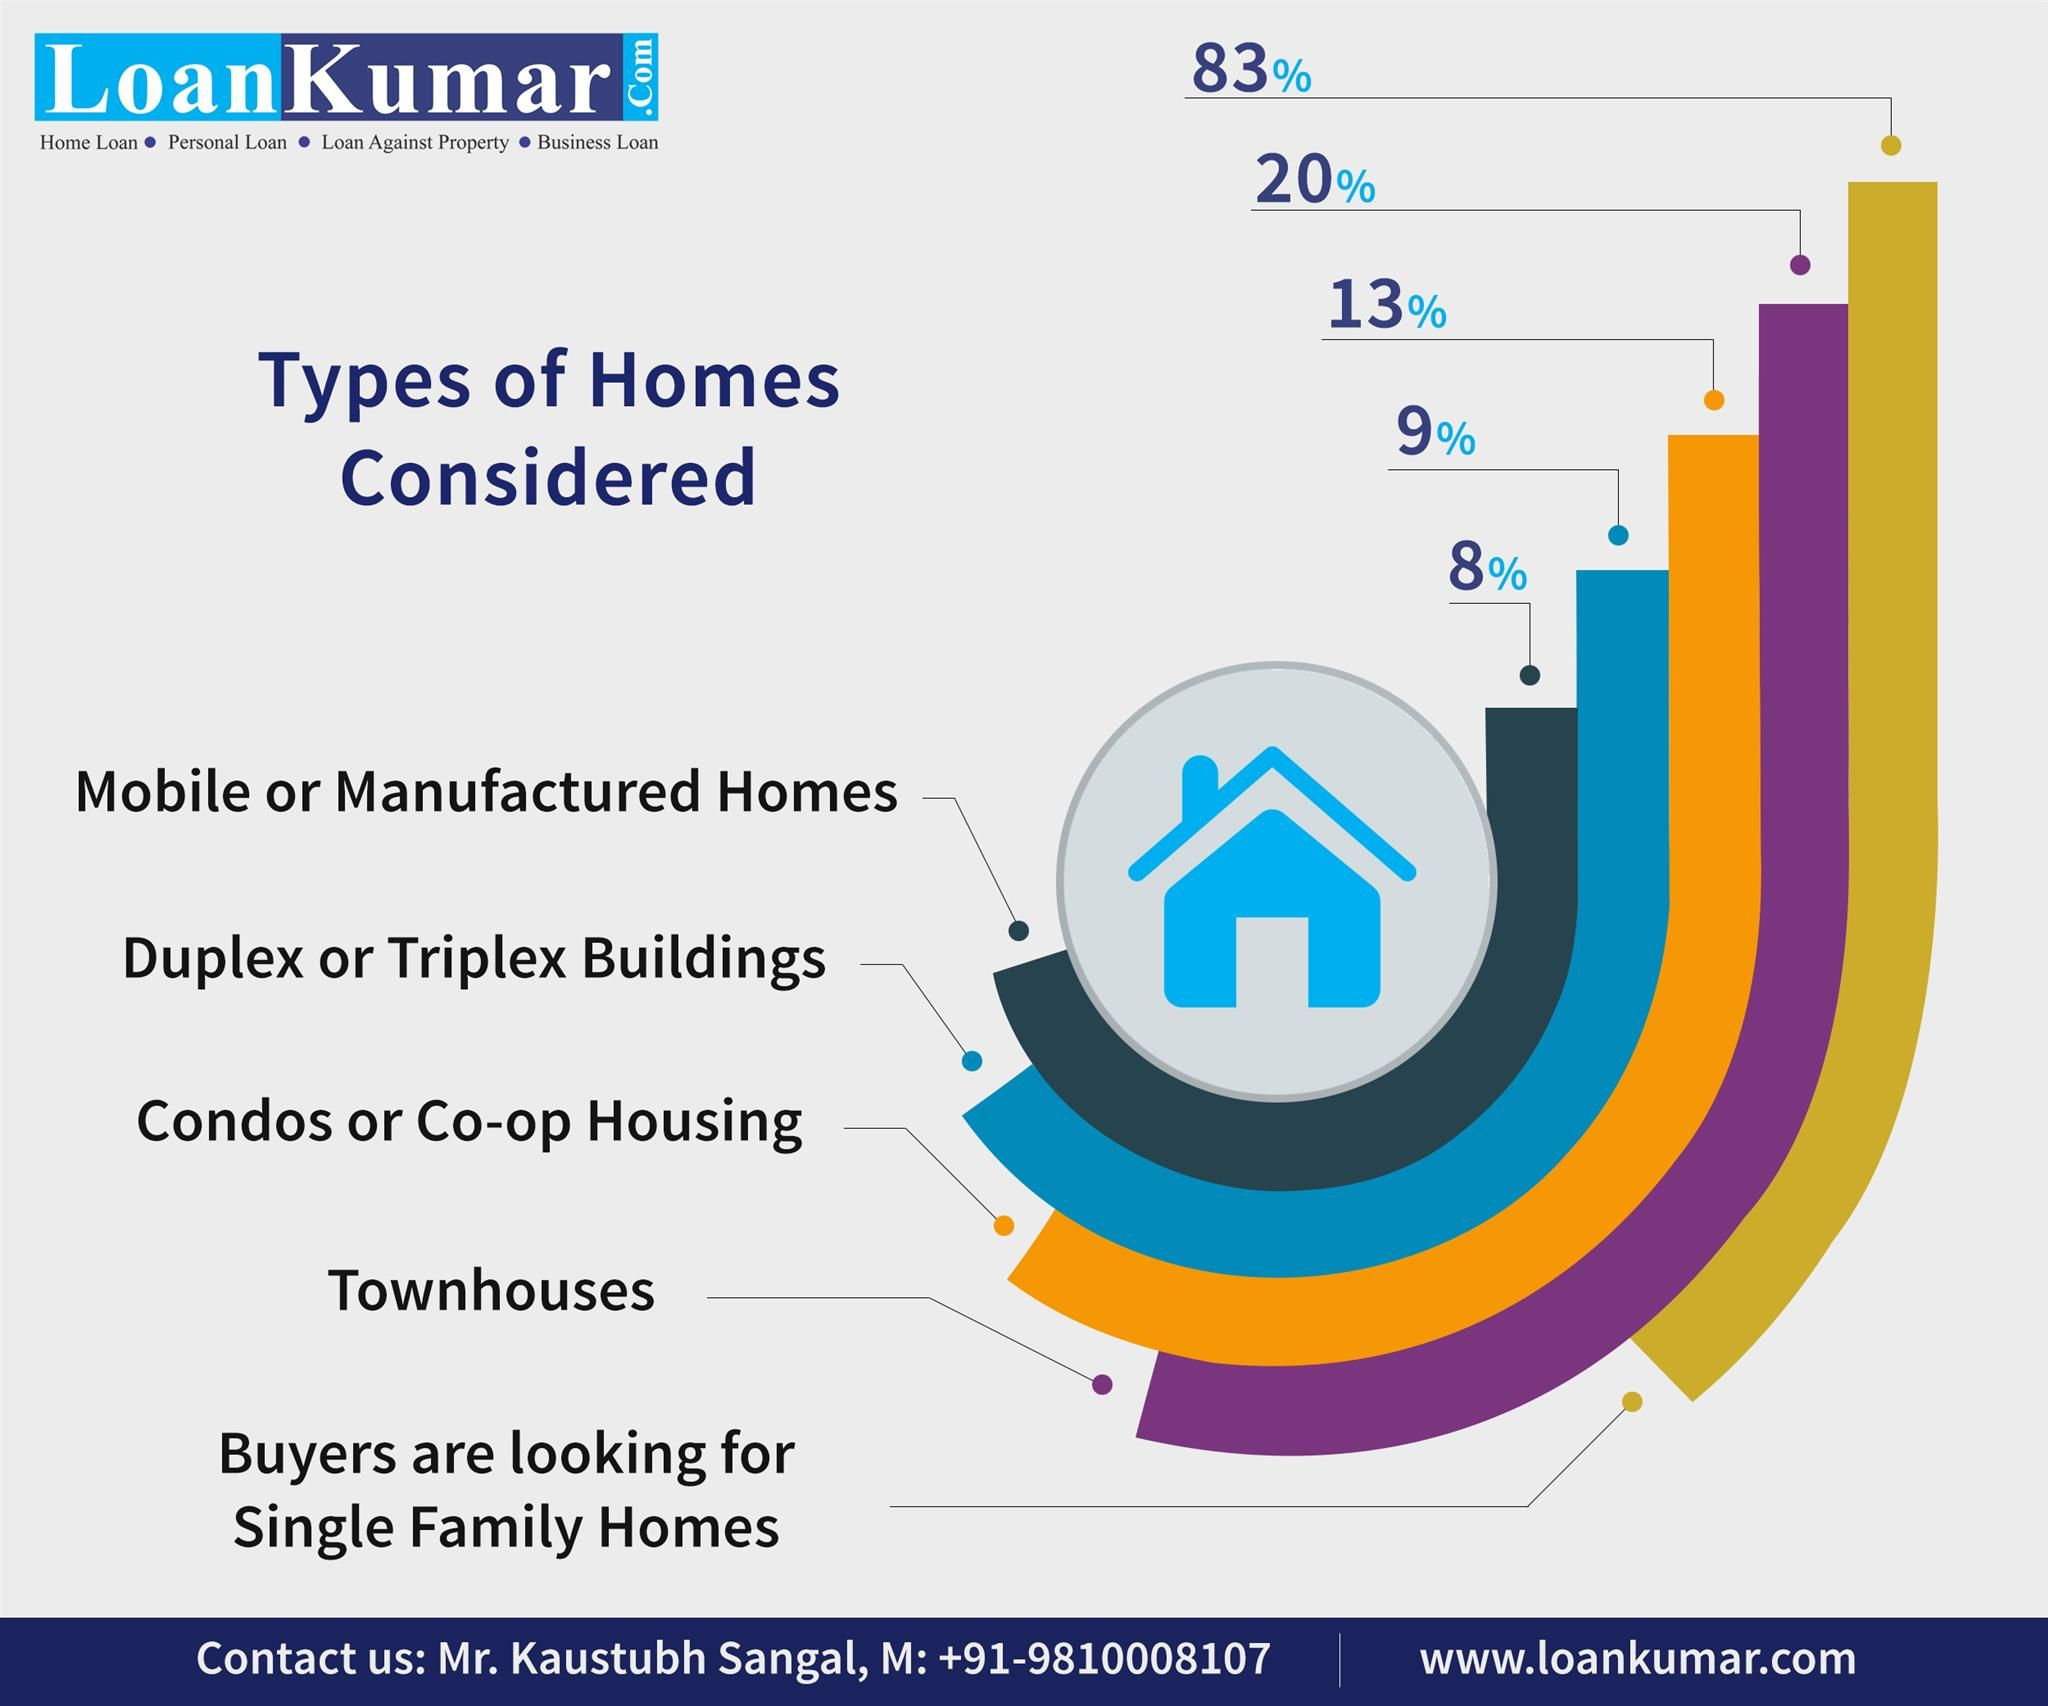 Types Of Home Considered Loankumar Loankumar Loan Loans Homeloans Homeloan Infographic Design Info